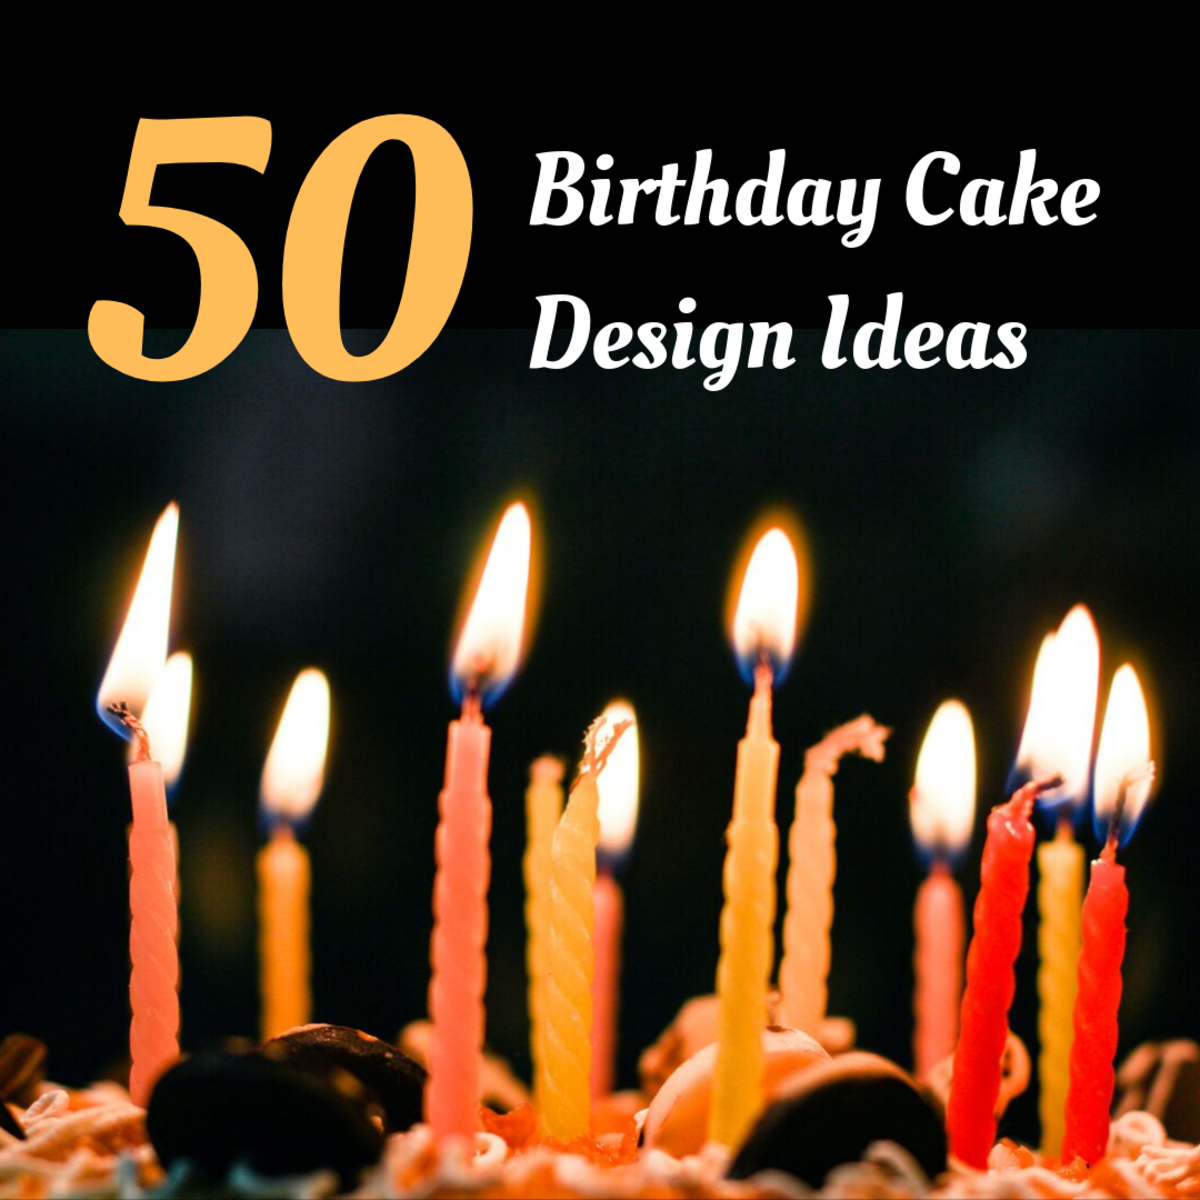 Look through some beautiful birthday cake designs for kids and for adults, and get inspired to decorate your next cake.